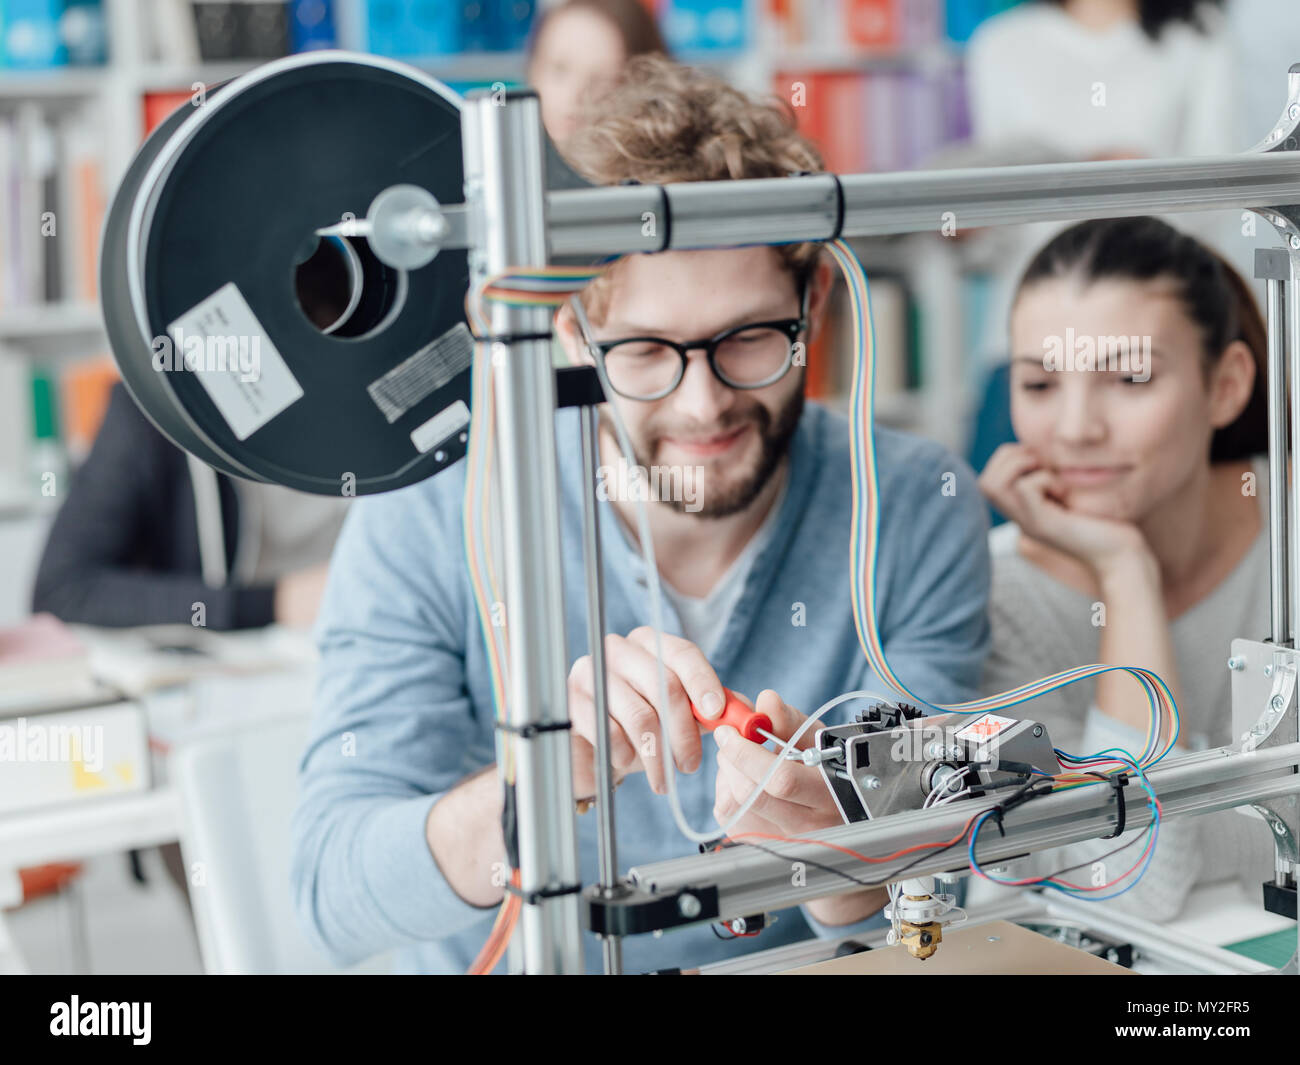 Engineering students using a 3D printer in the laboratory, a student is using a screwdriver - Stock Image